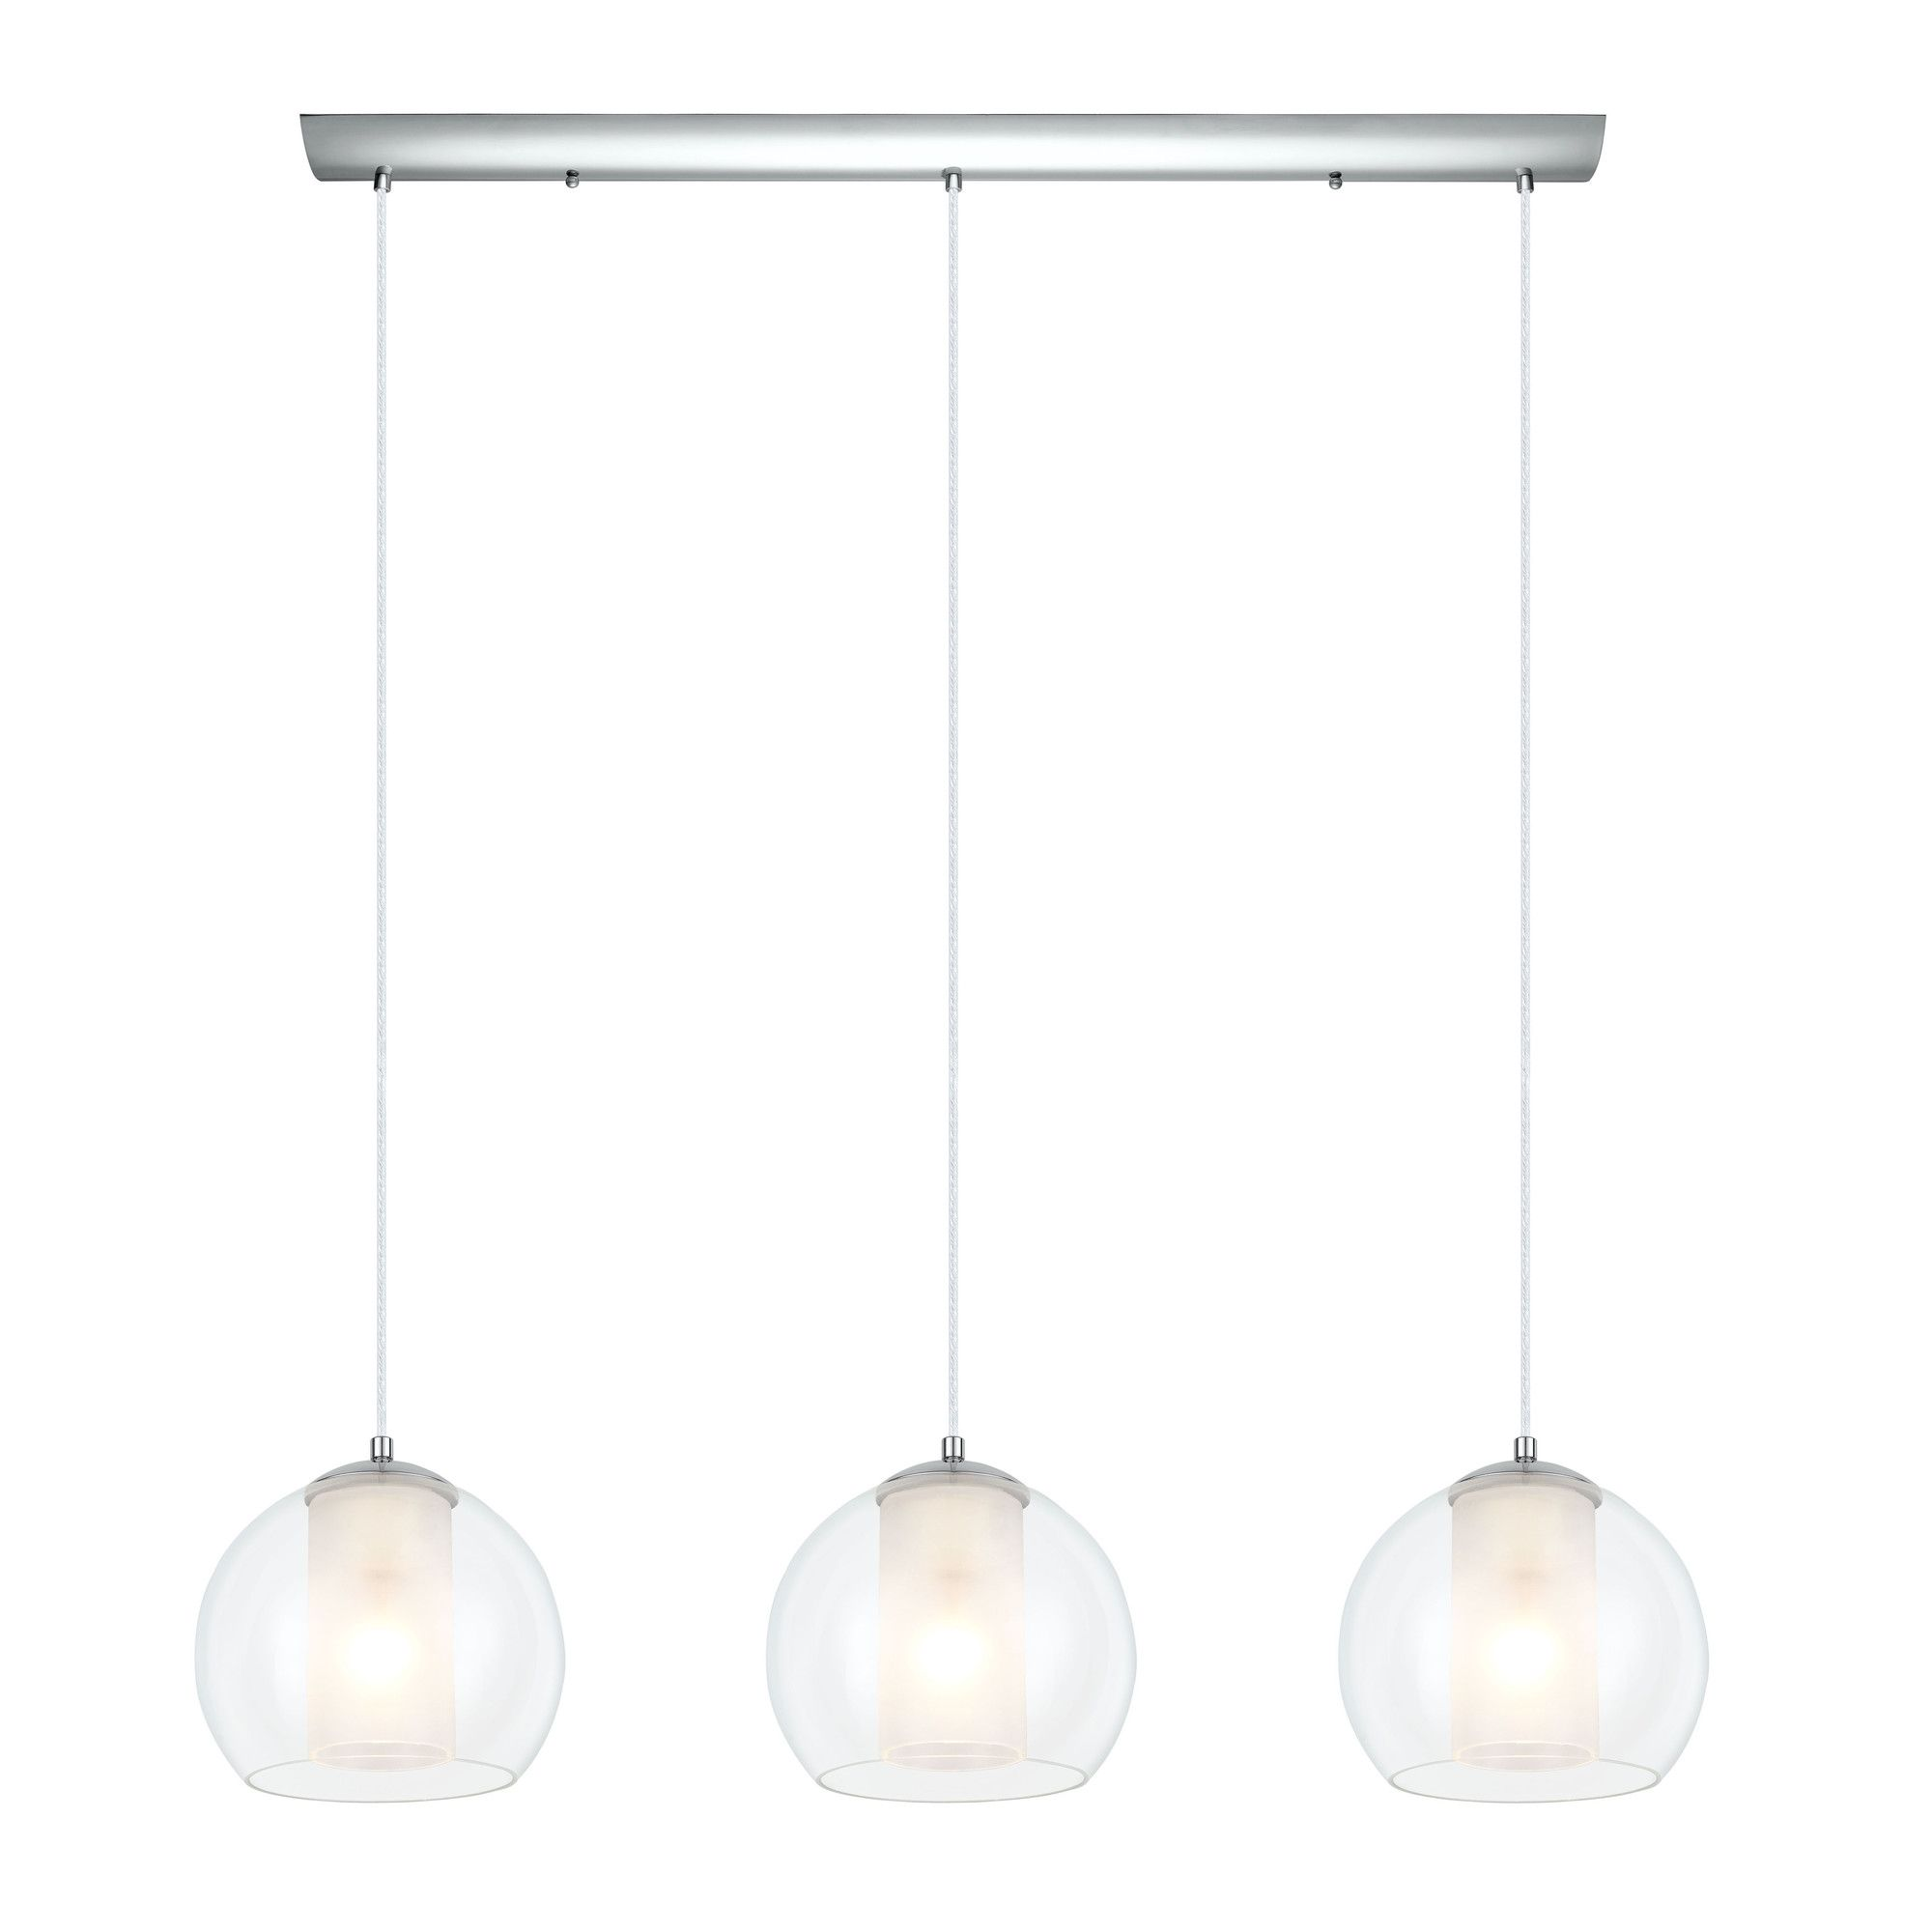 Eglo bolsano 3 light kitchen island pendant allmodern lighting eglo bolsano 3 light kitchen island pendant allmodern aloadofball Gallery